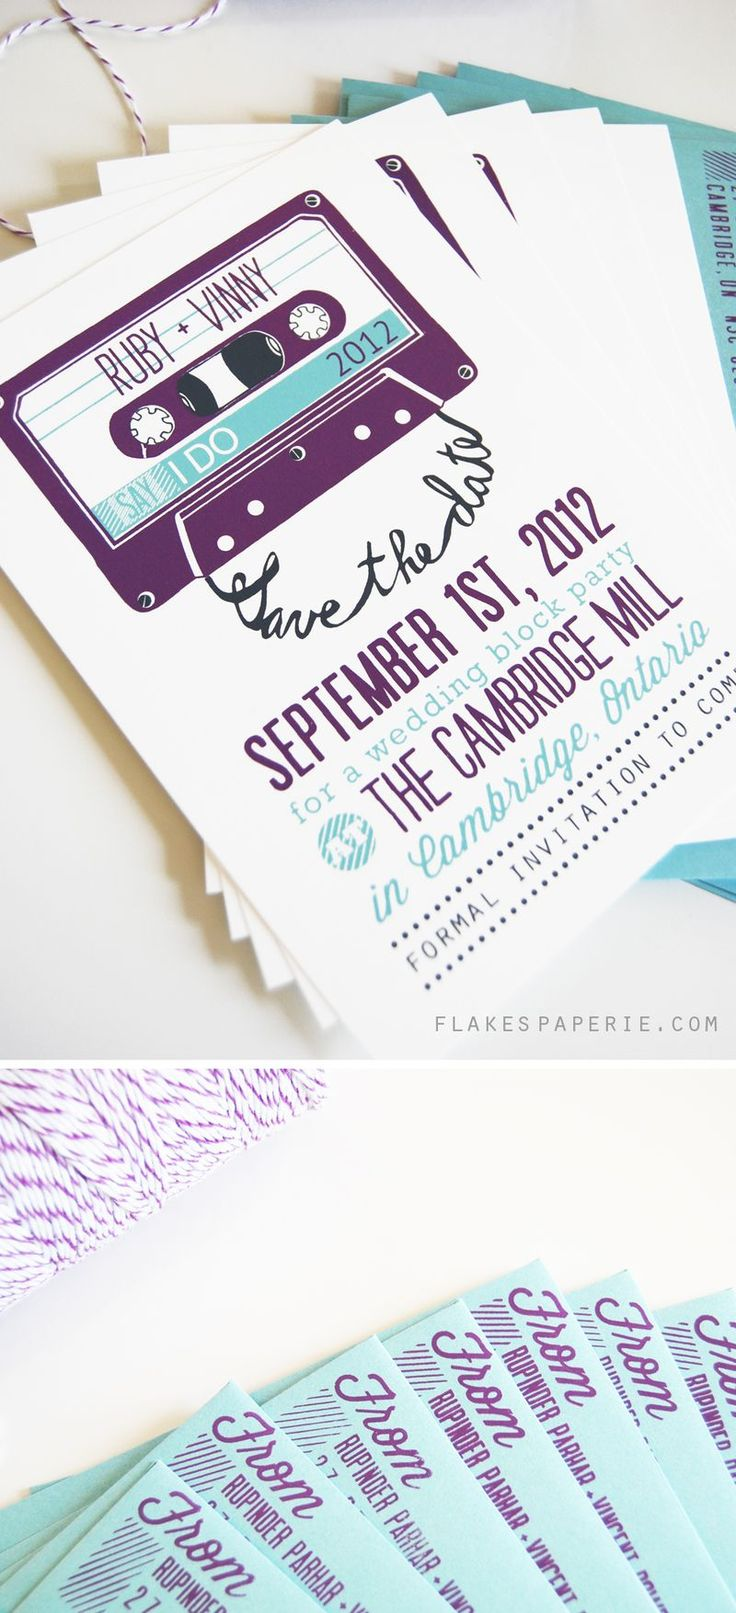 Mixtape save the date - best hipster wedding invitation ever?